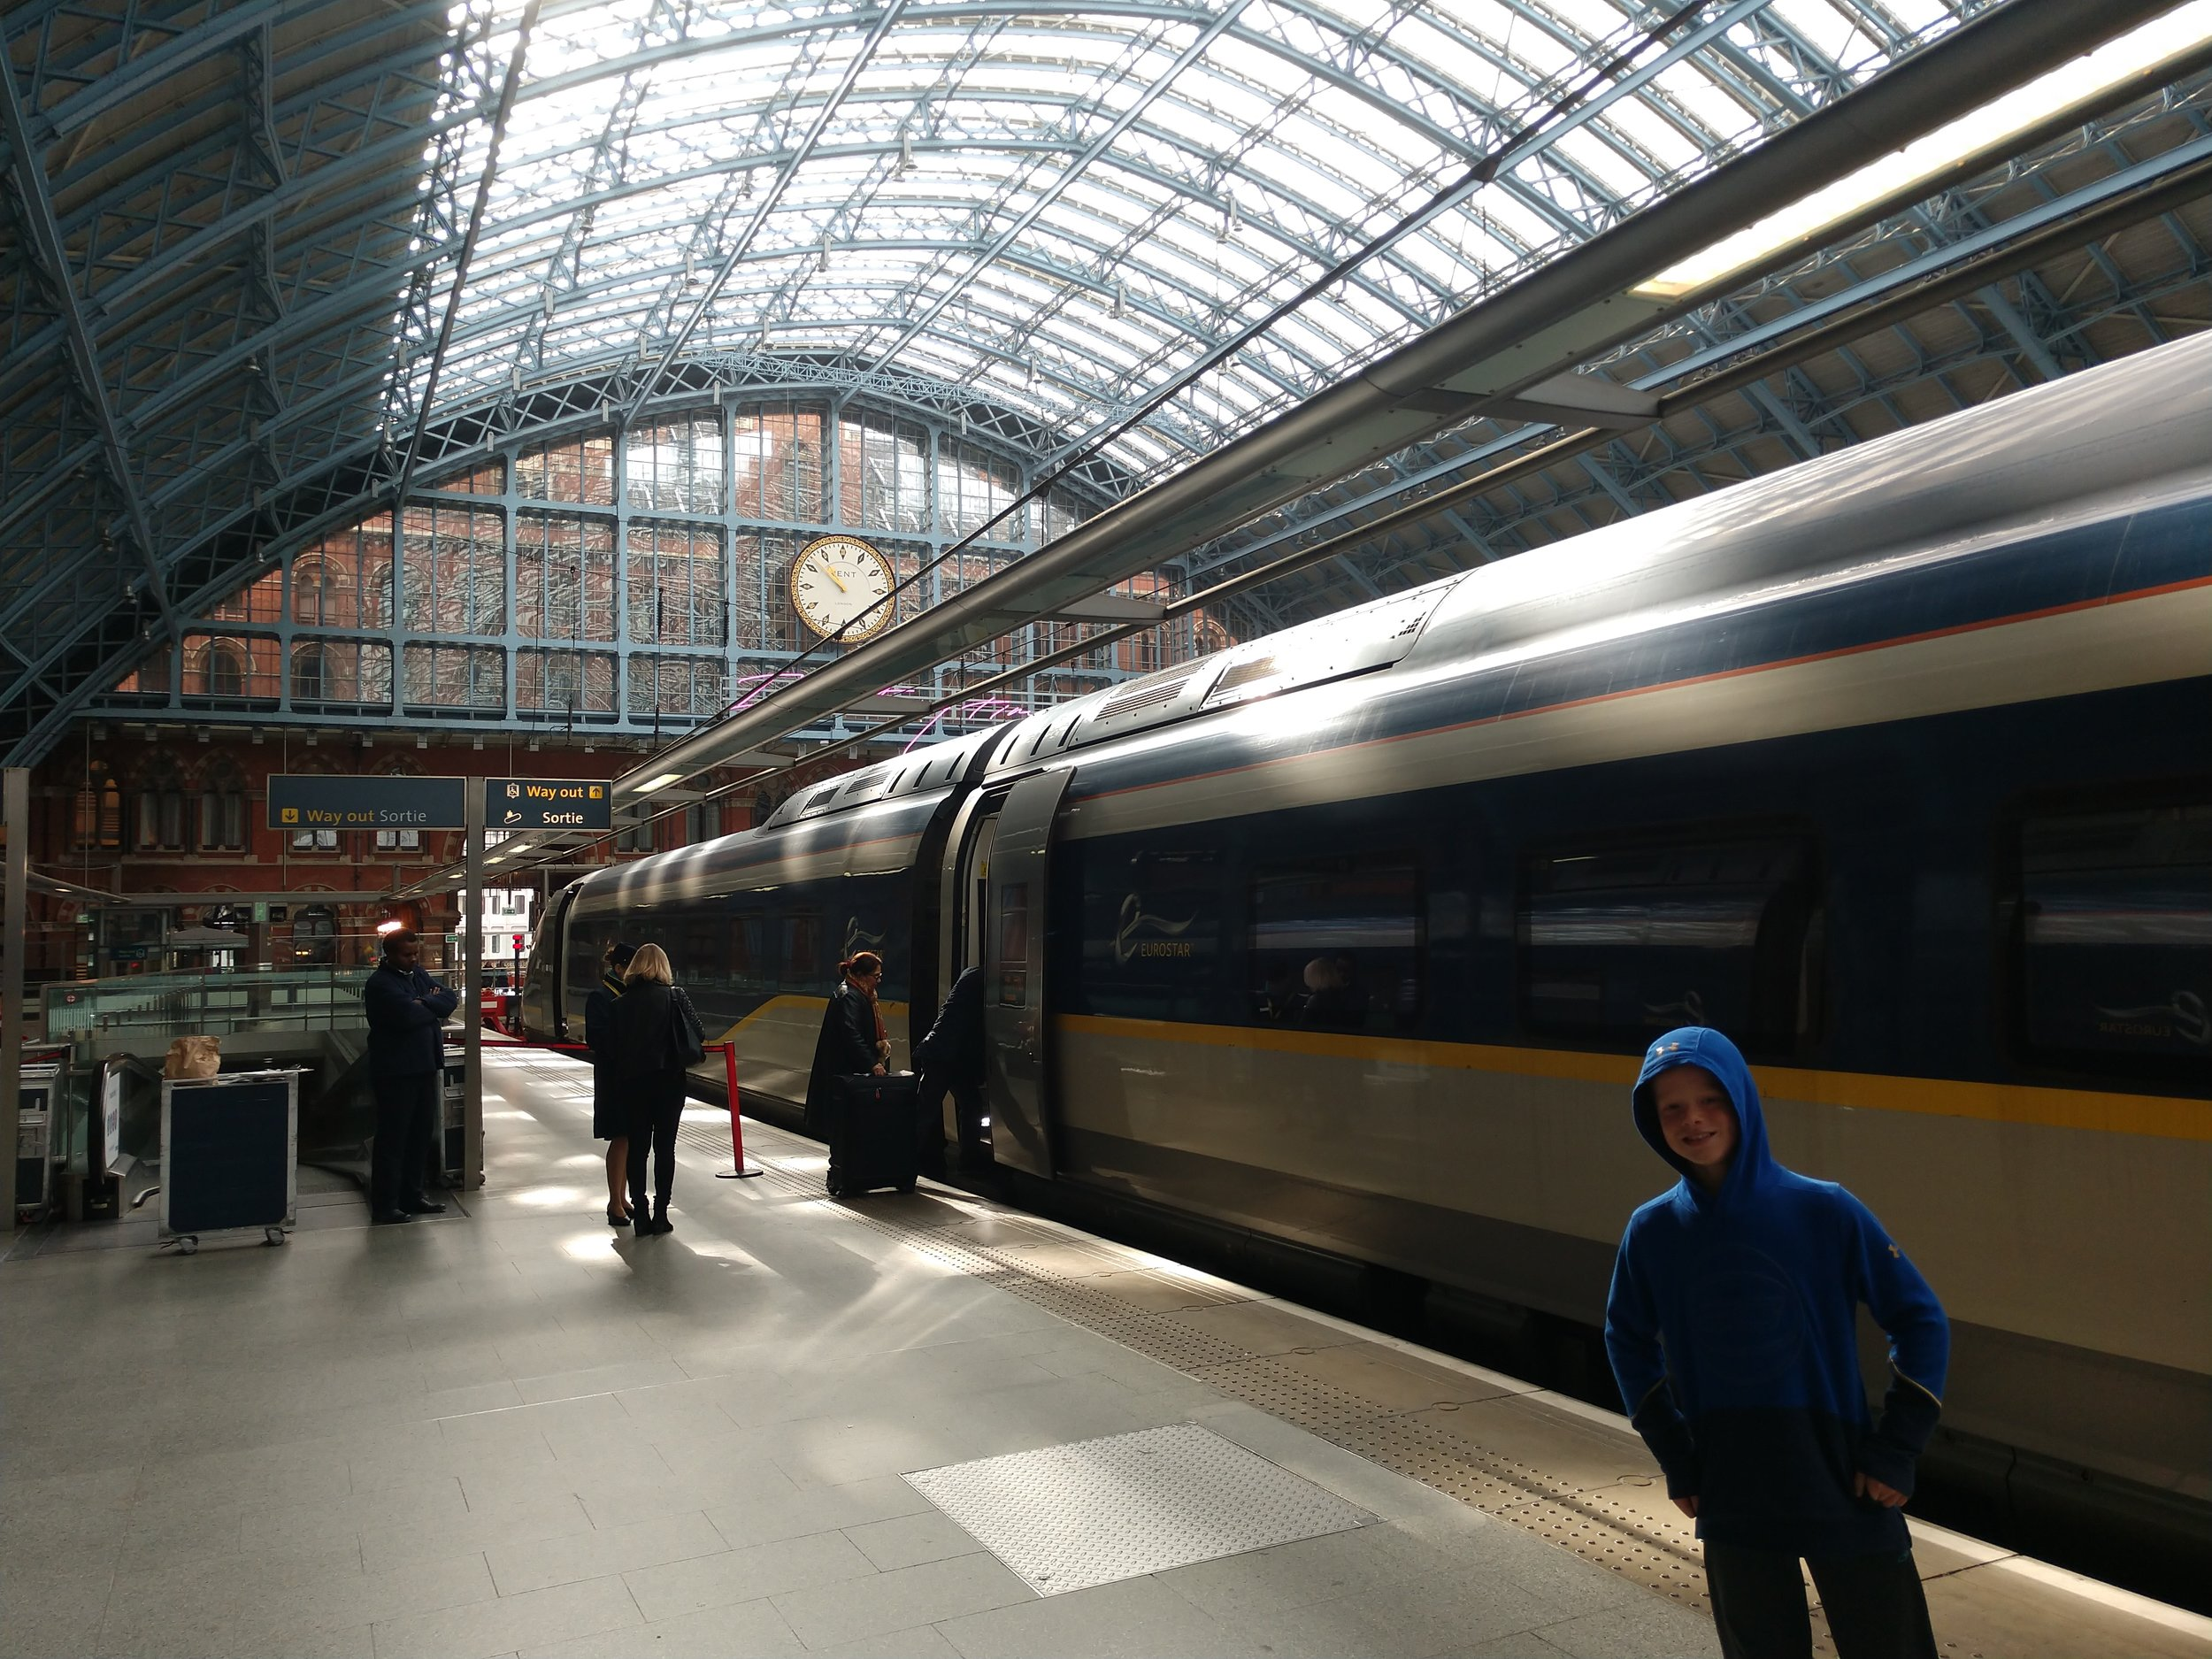 Outside the Eurostar in St. Pancras station. There is a mad rush to board but then the platform kinda clears out. The escalators up from the waiting room are on the left, behind the attendant.